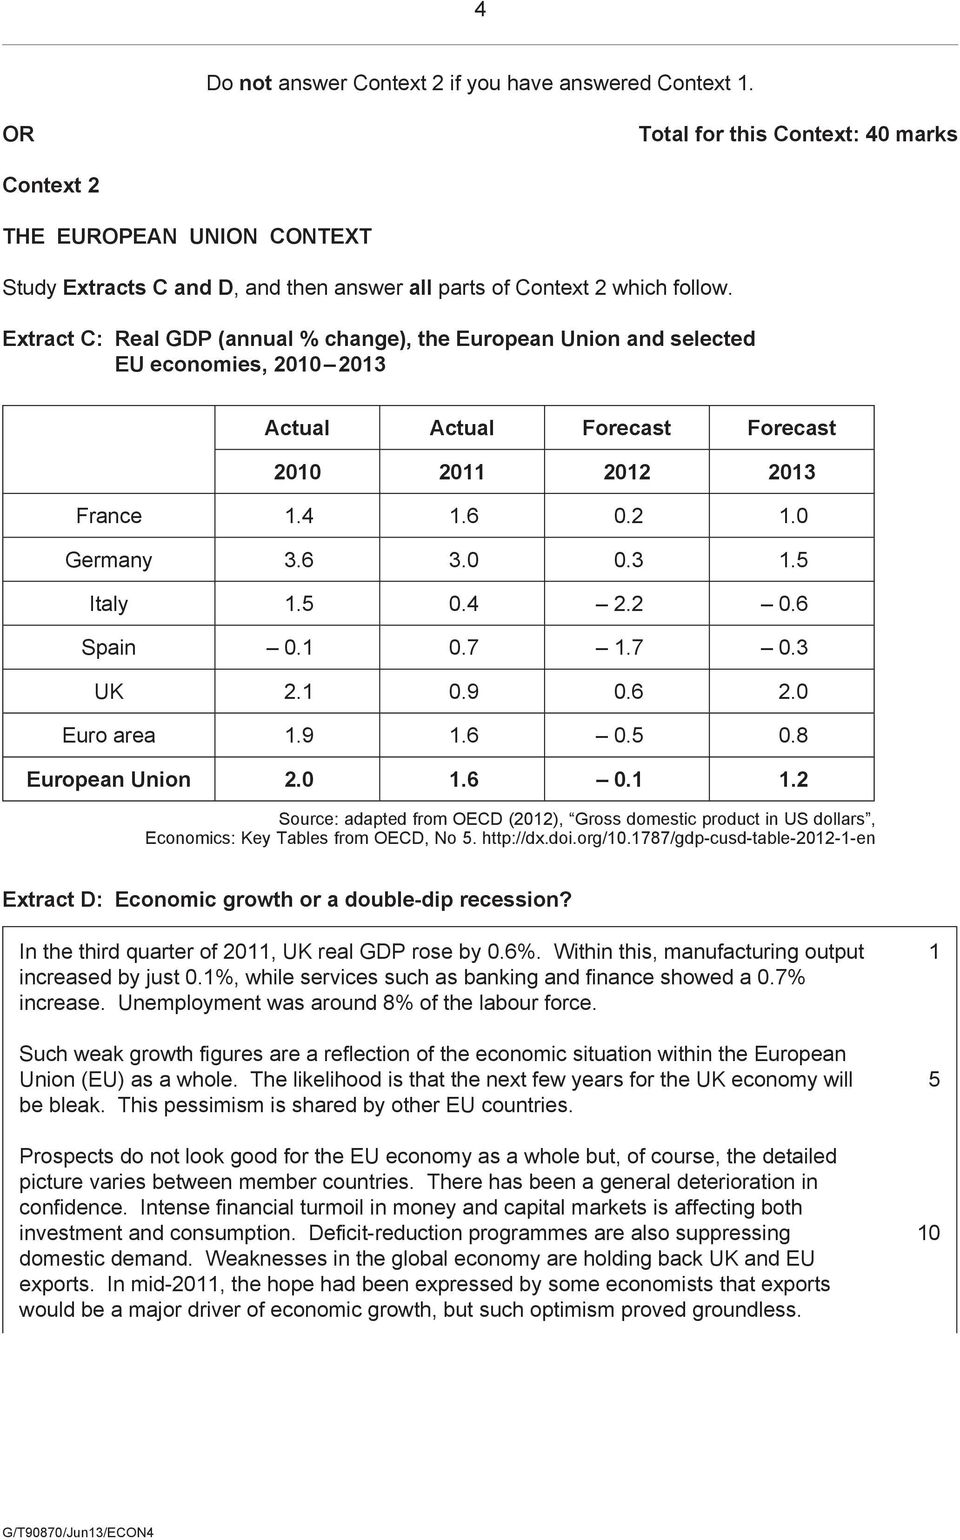 Extract C: Real GDP (annual % change), the European Union and selected EU economies, 2010 2013 Actual Actual Forecast Forecast 2010 2011 2012 2013 France 1.4 1.6 0.2 1.0 Germany 3.6 3.0 0.3 1.